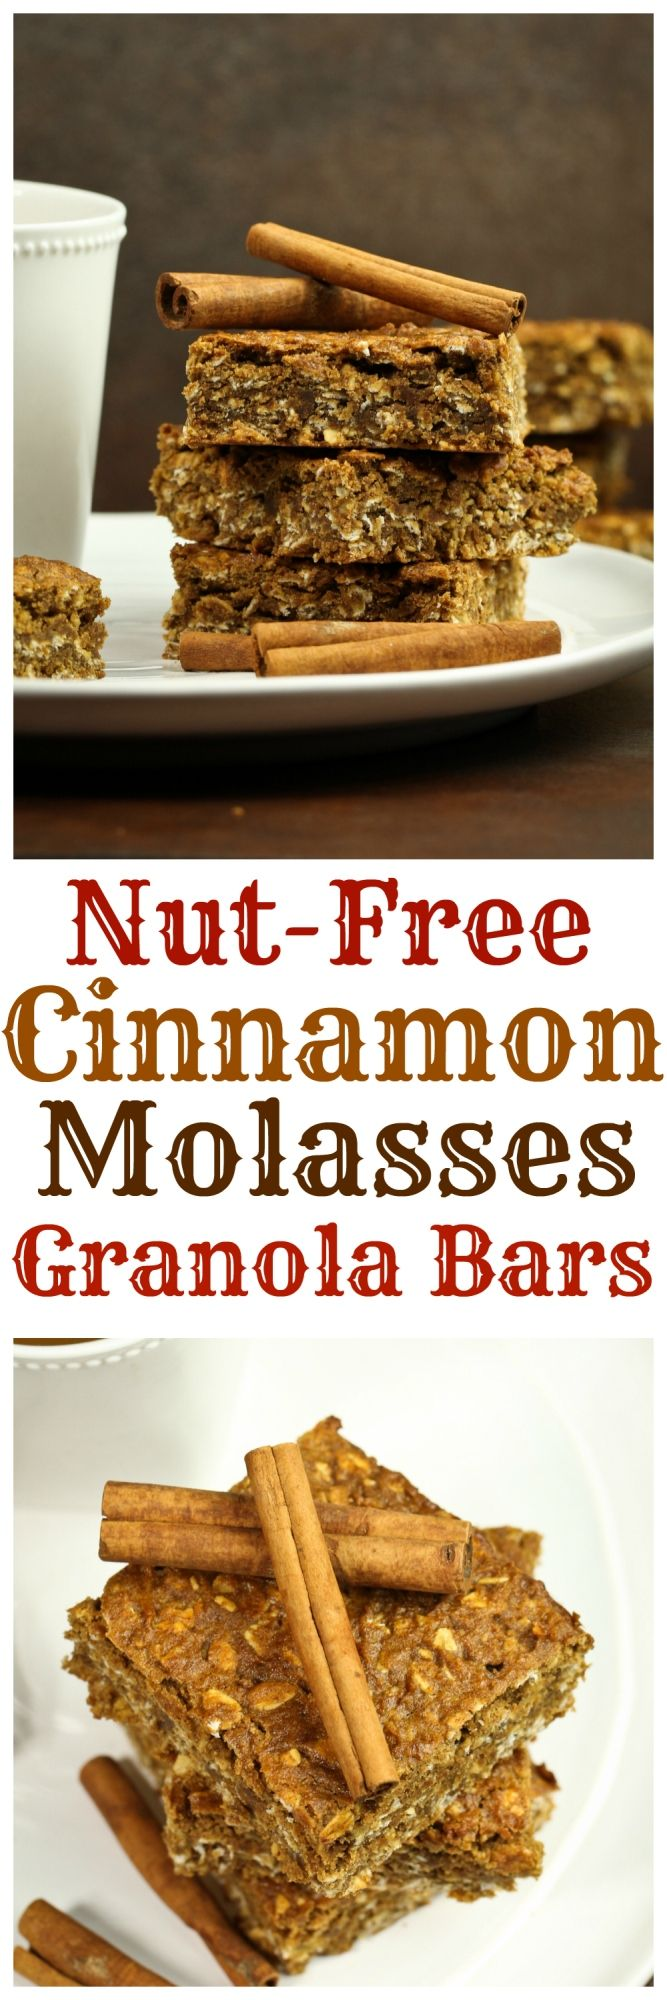 My new addiction right here....these. Omg, I literally moaned eating these bars. I'm so excited to share this recipe. These are super soft, chewy, almost like a soft cookie. They have a warm cinnamon flavor and scent and the perfect touch of molasses. Can you believe it's been 5 posts and a month and a half since I last posted